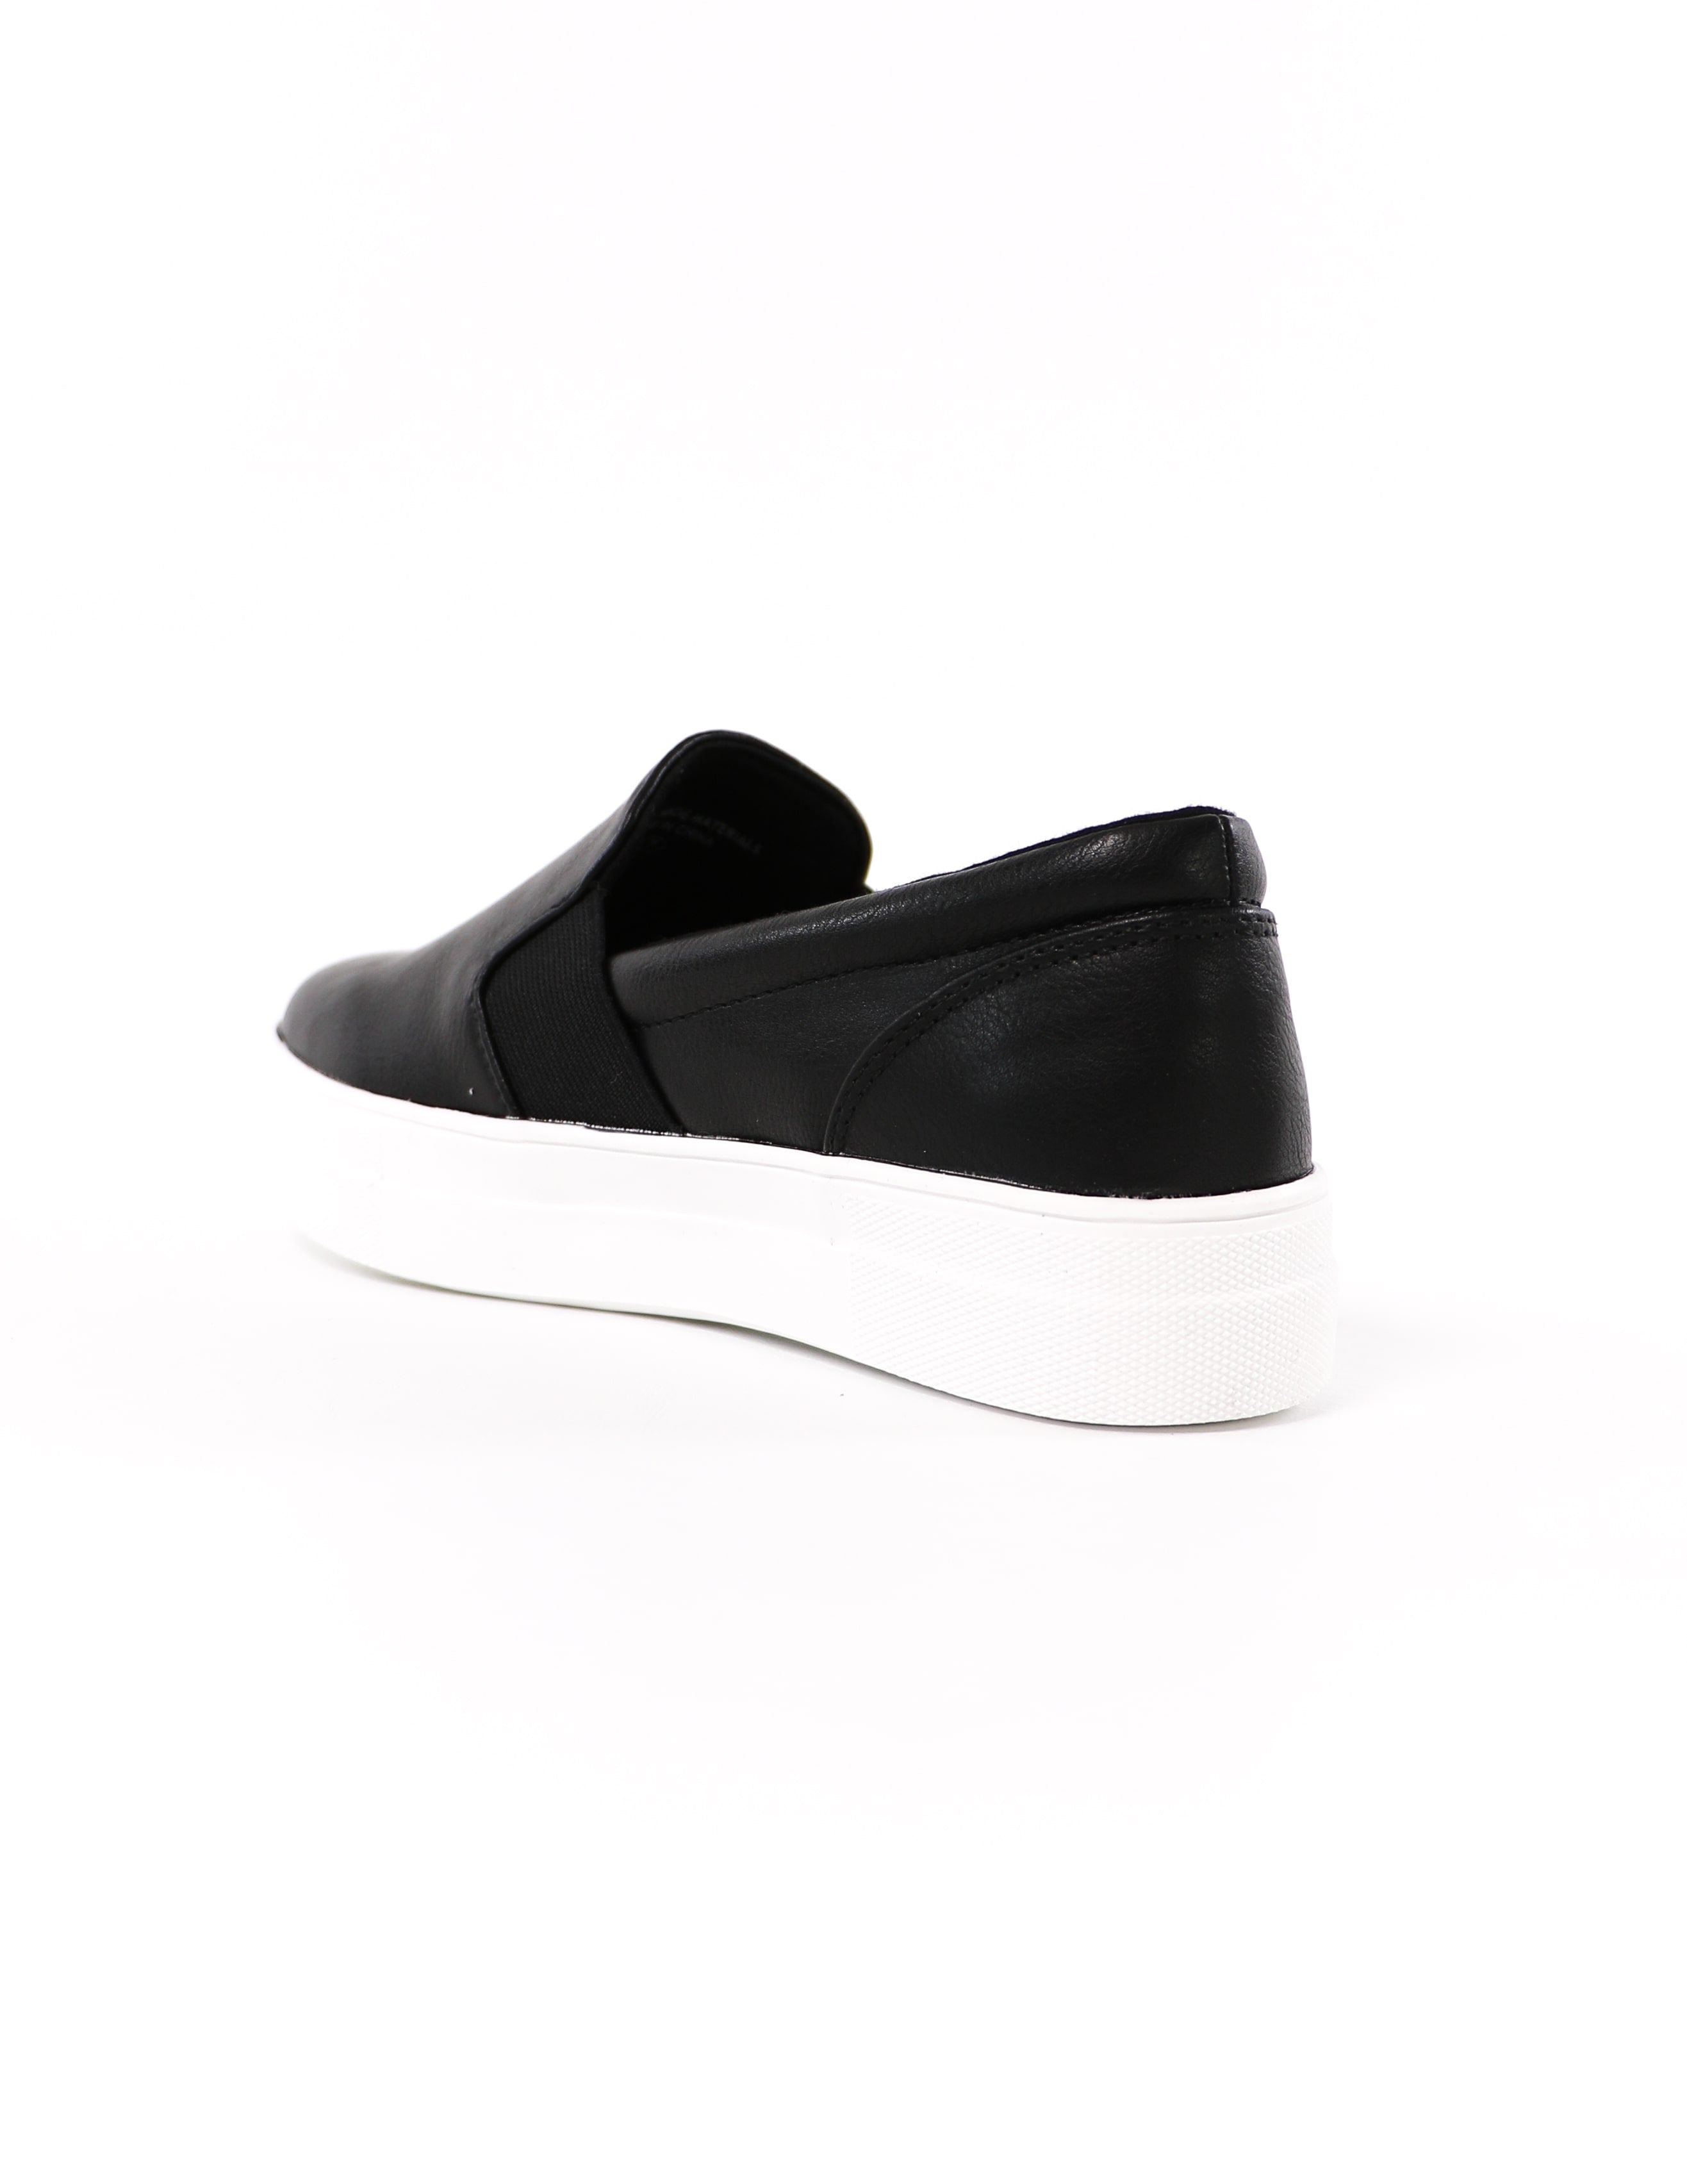 back of the black kickin' it sole-o slip on sneaker - elle bleu shoes